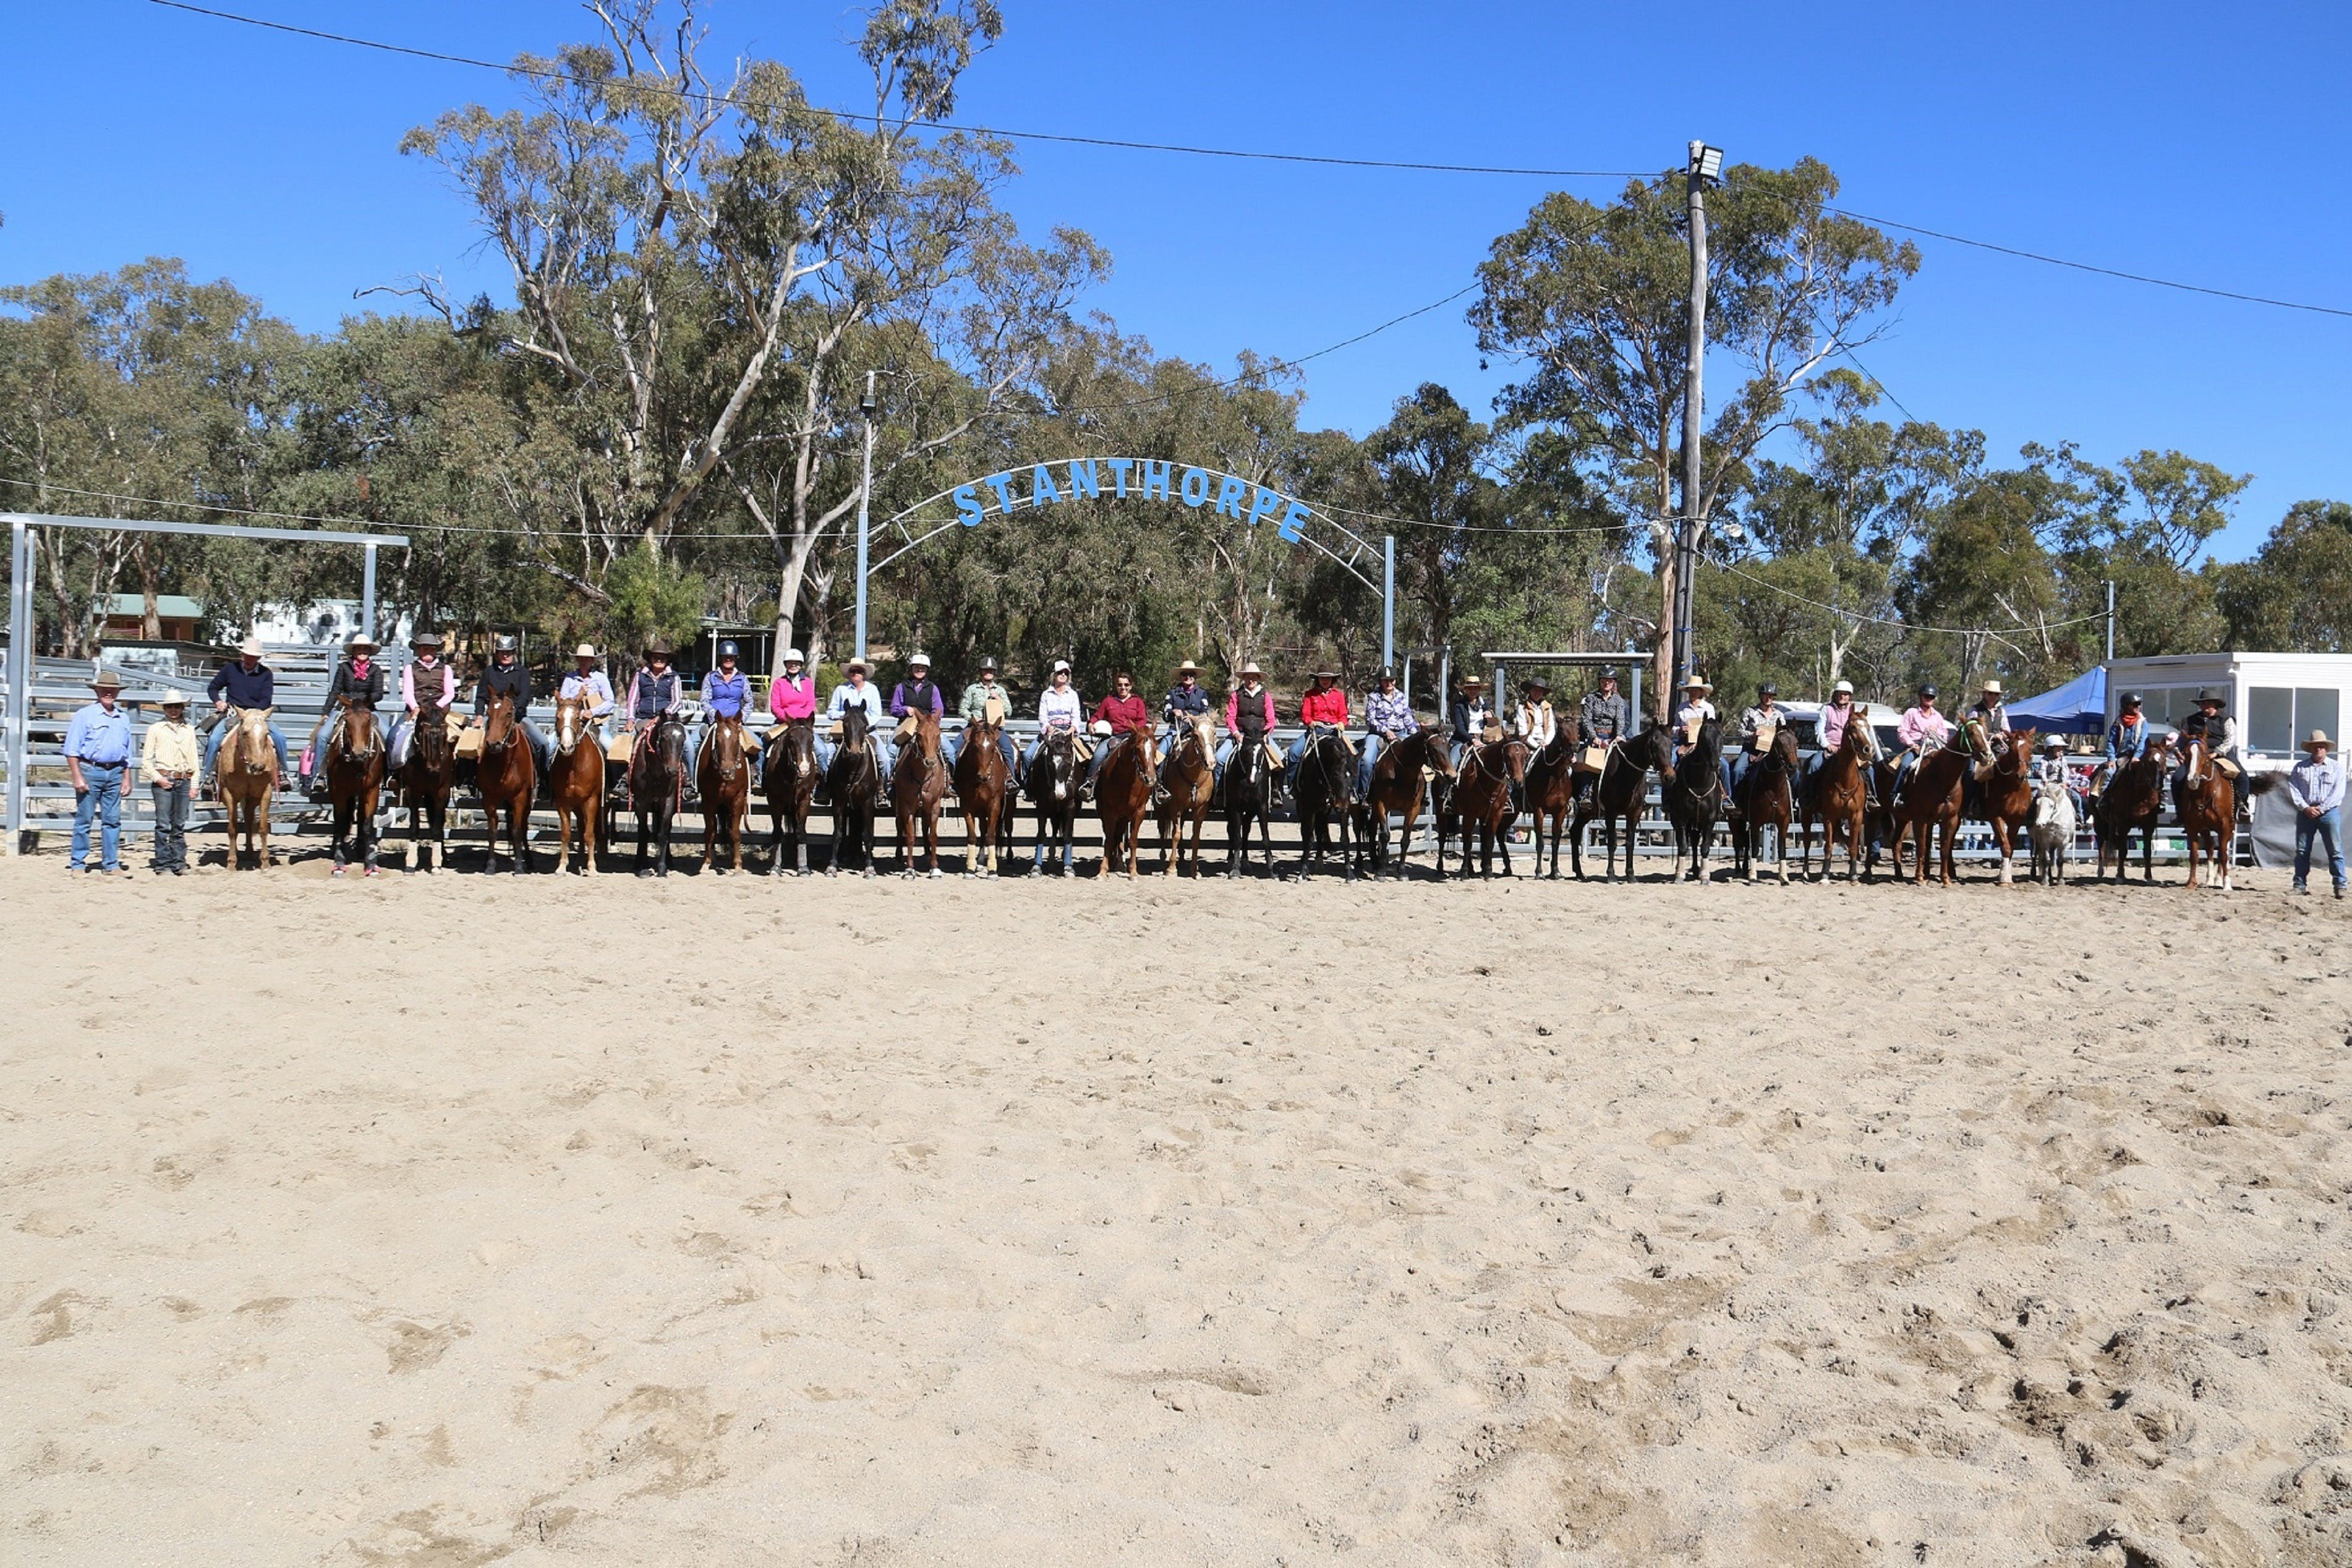 Australian Campdraft Association National Finals Campdraft 2021 - WA Accommodation